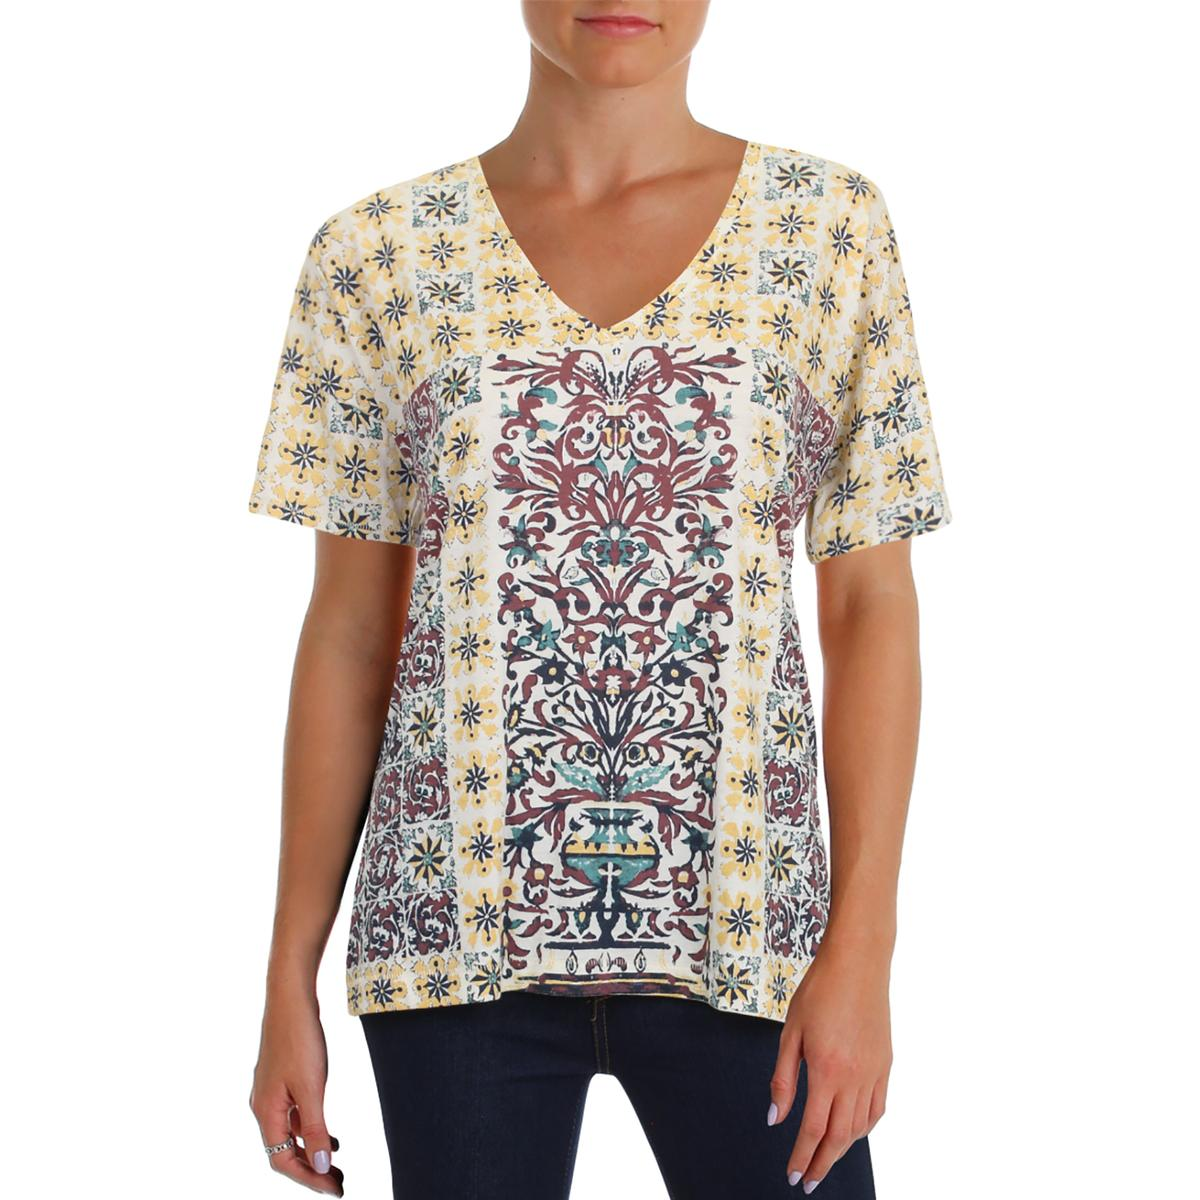 78bac164d1b1e Details about Lucky Brand Womens Printed V-Neck Side Slit T-Shirt Top BHFO  4300